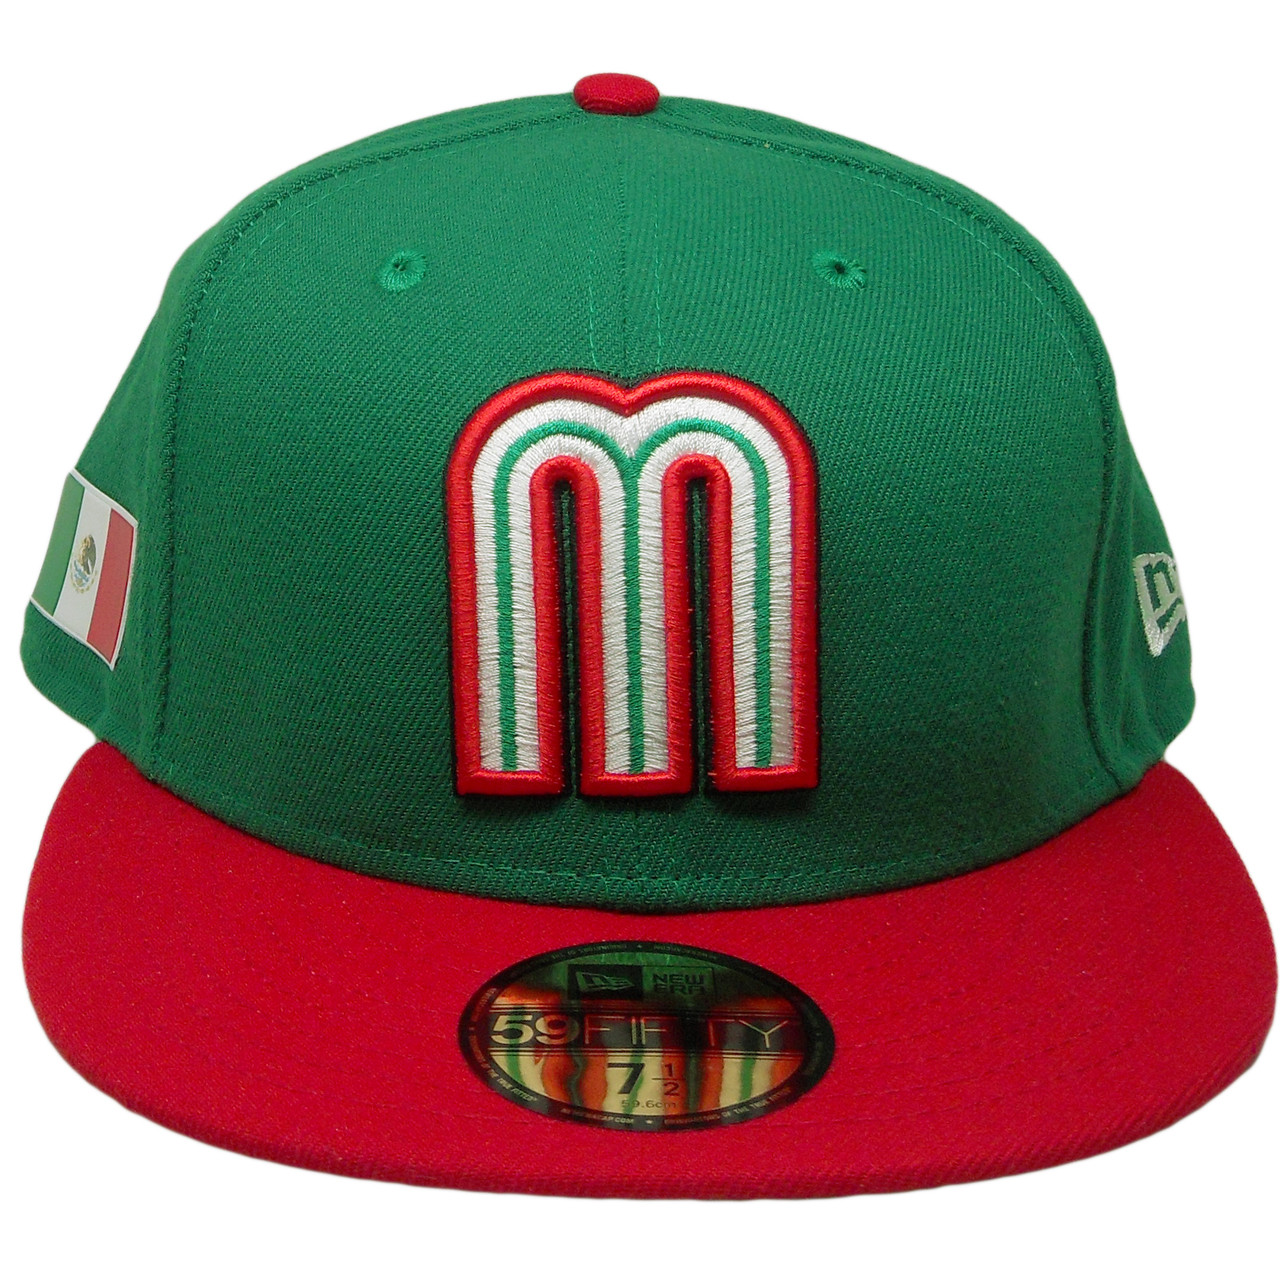 Mexico New Era 59Fifty JR WBC17 Fitted Hat - Green 3d226902b419